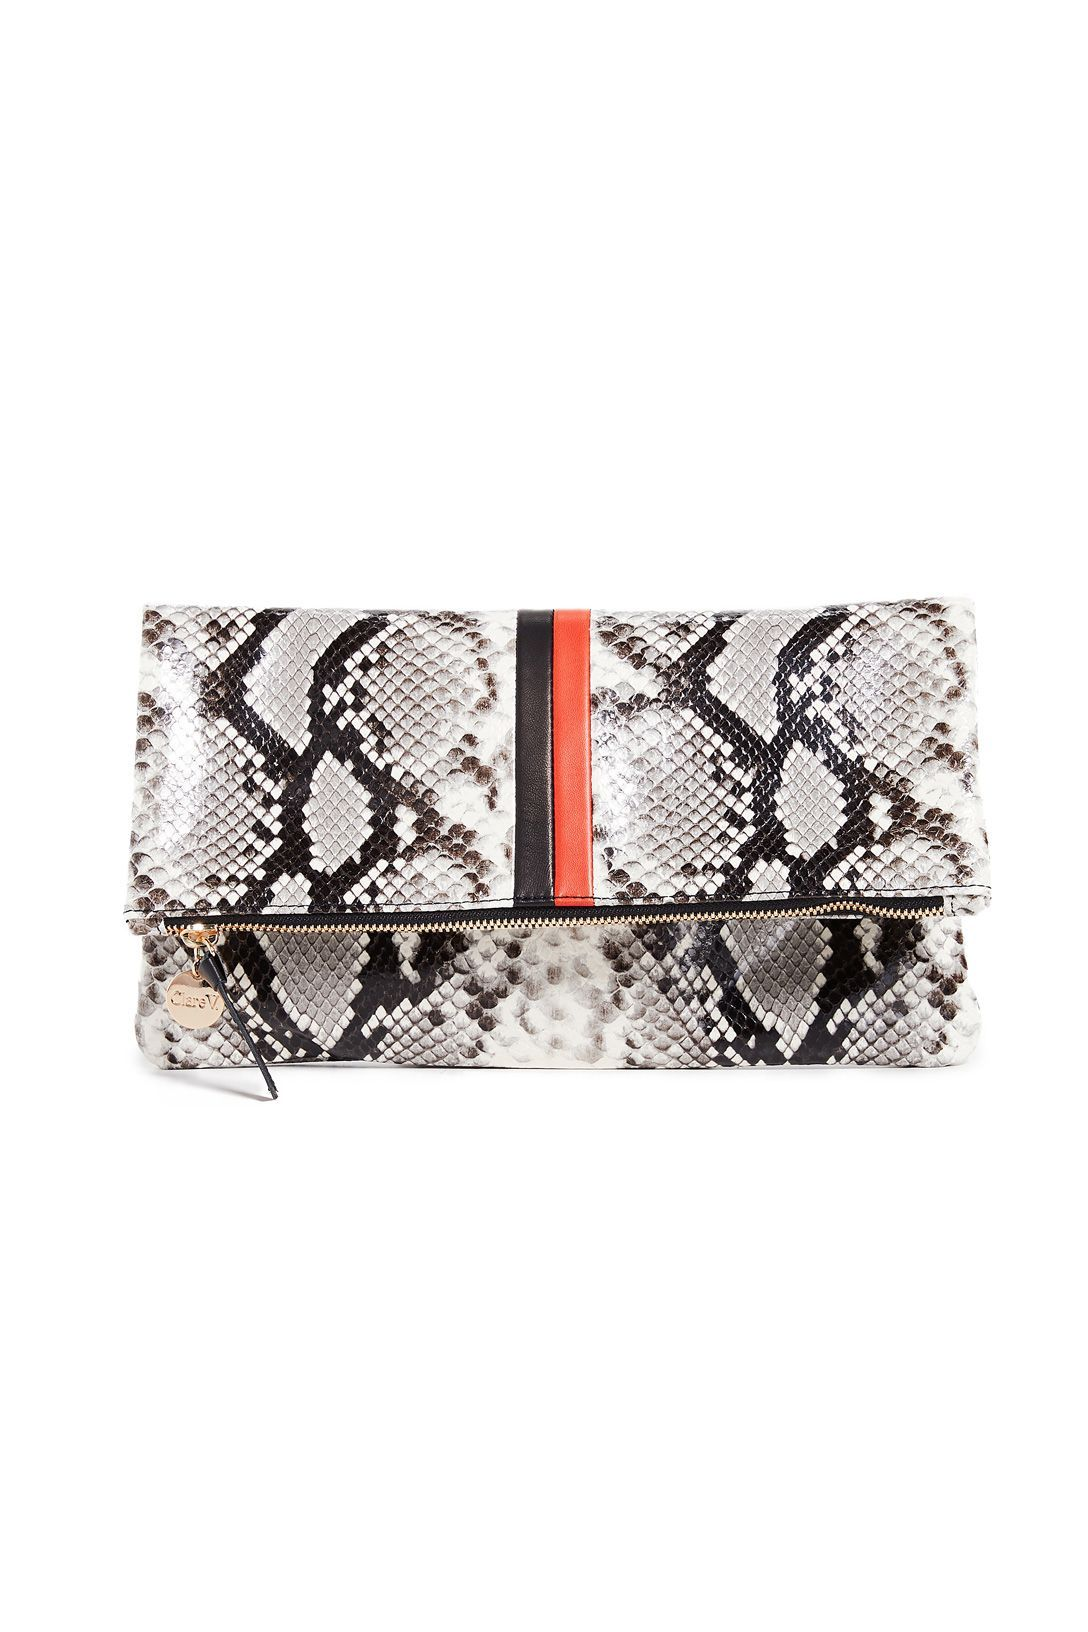 A Daytime/Nighttime Clutch Clare V. Shopbop $164.50 SHOP IT Give mom the semi-fancy clutch she's been missing from her wardrobe. This python printed accessory has black and orange stripes right down the middle for a funky, but still functional look.